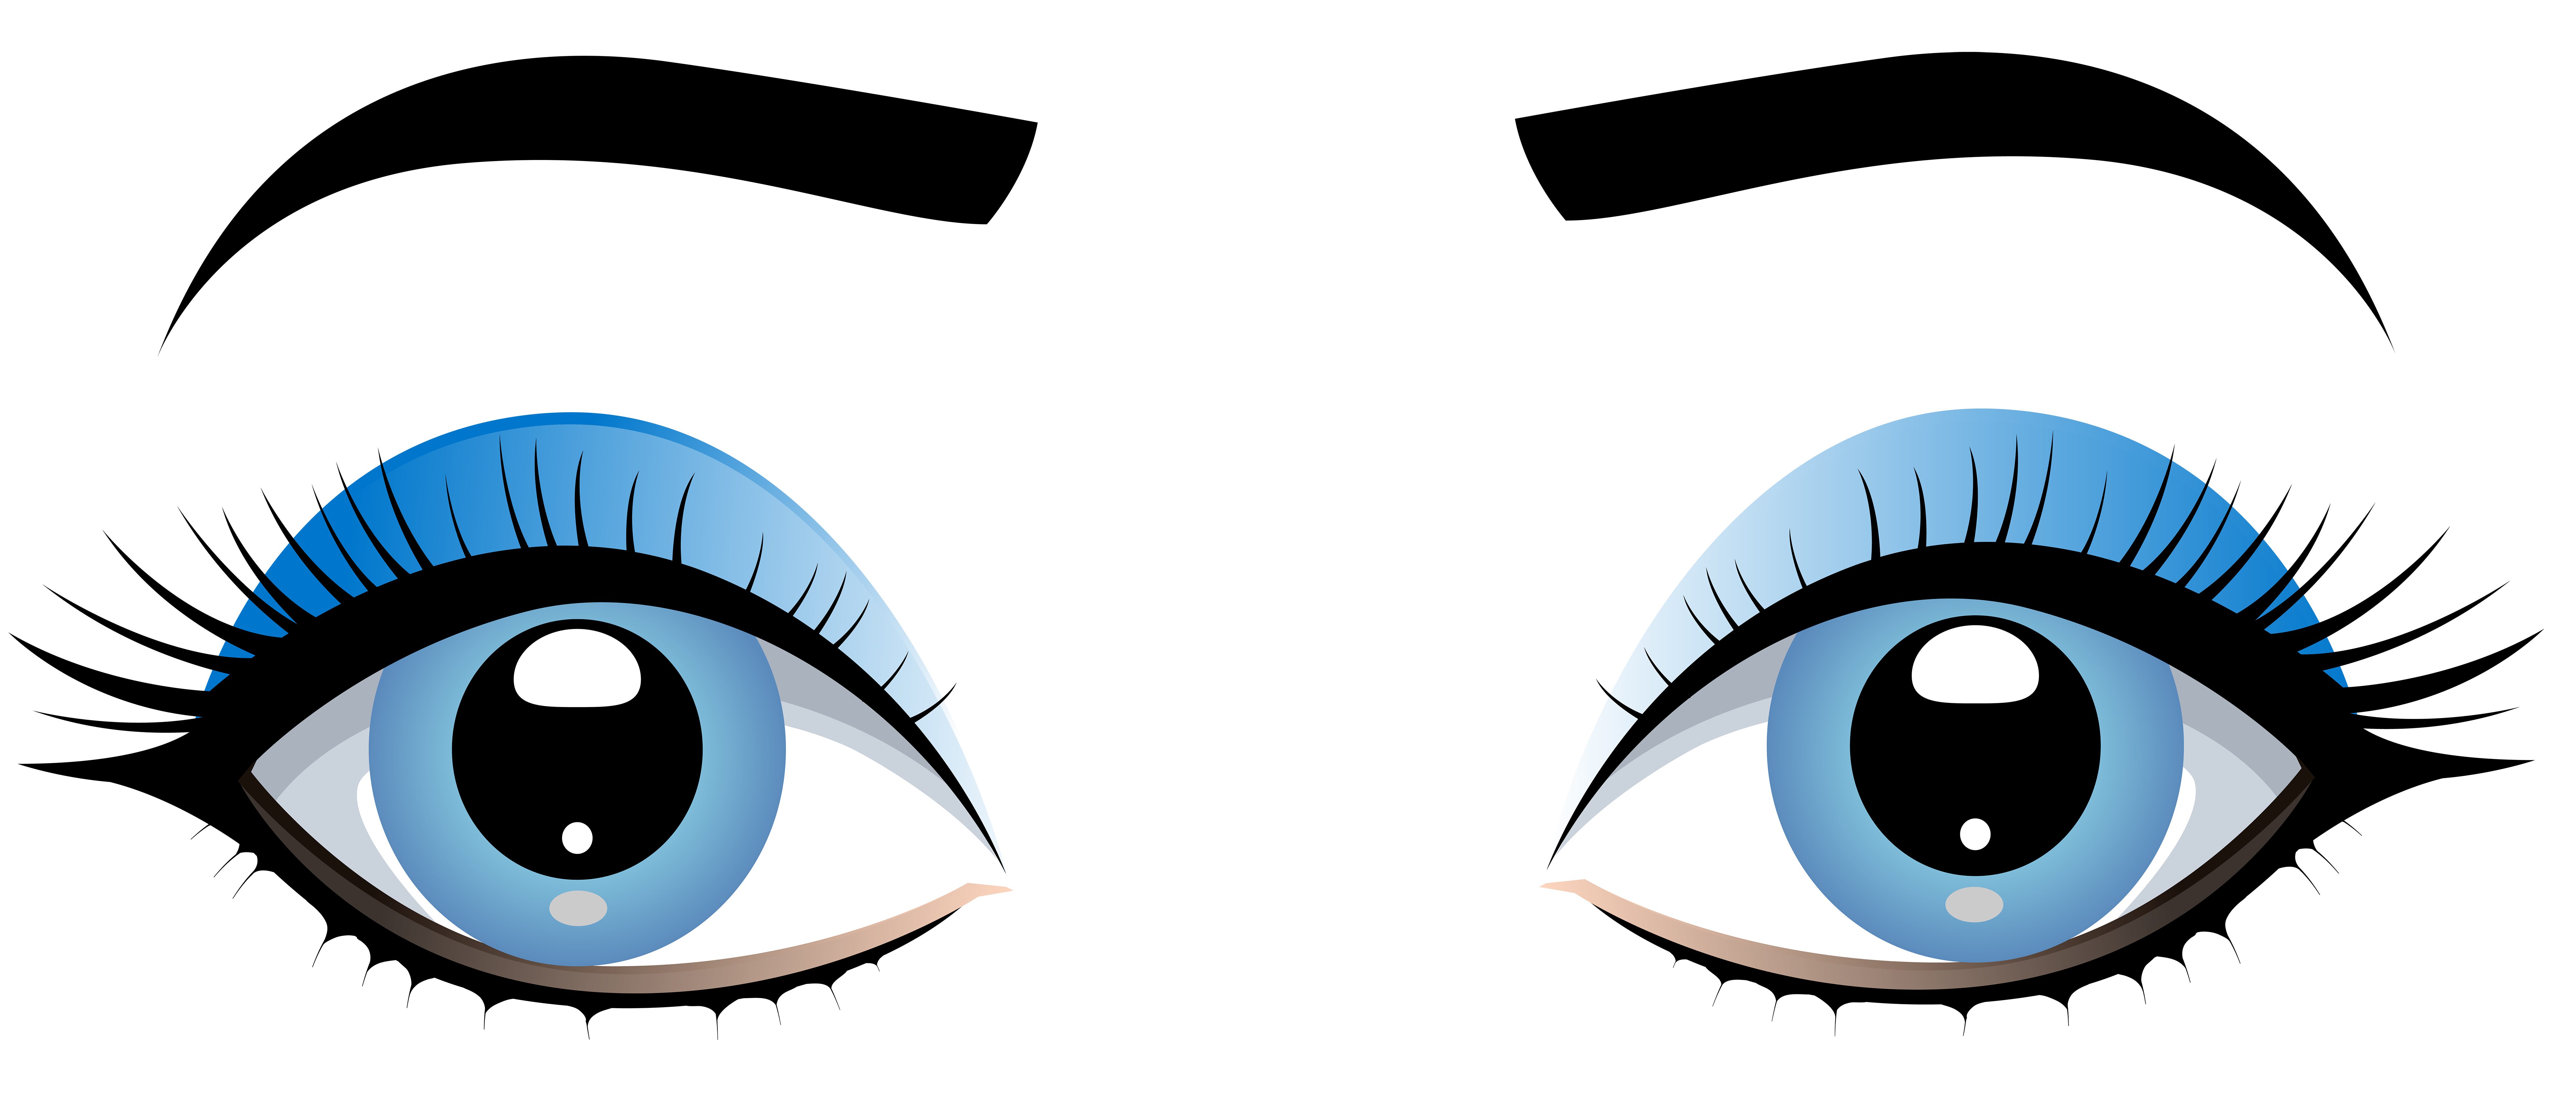 8000x3410 Blue Female Eyes With Eyebrows Png Clip Art